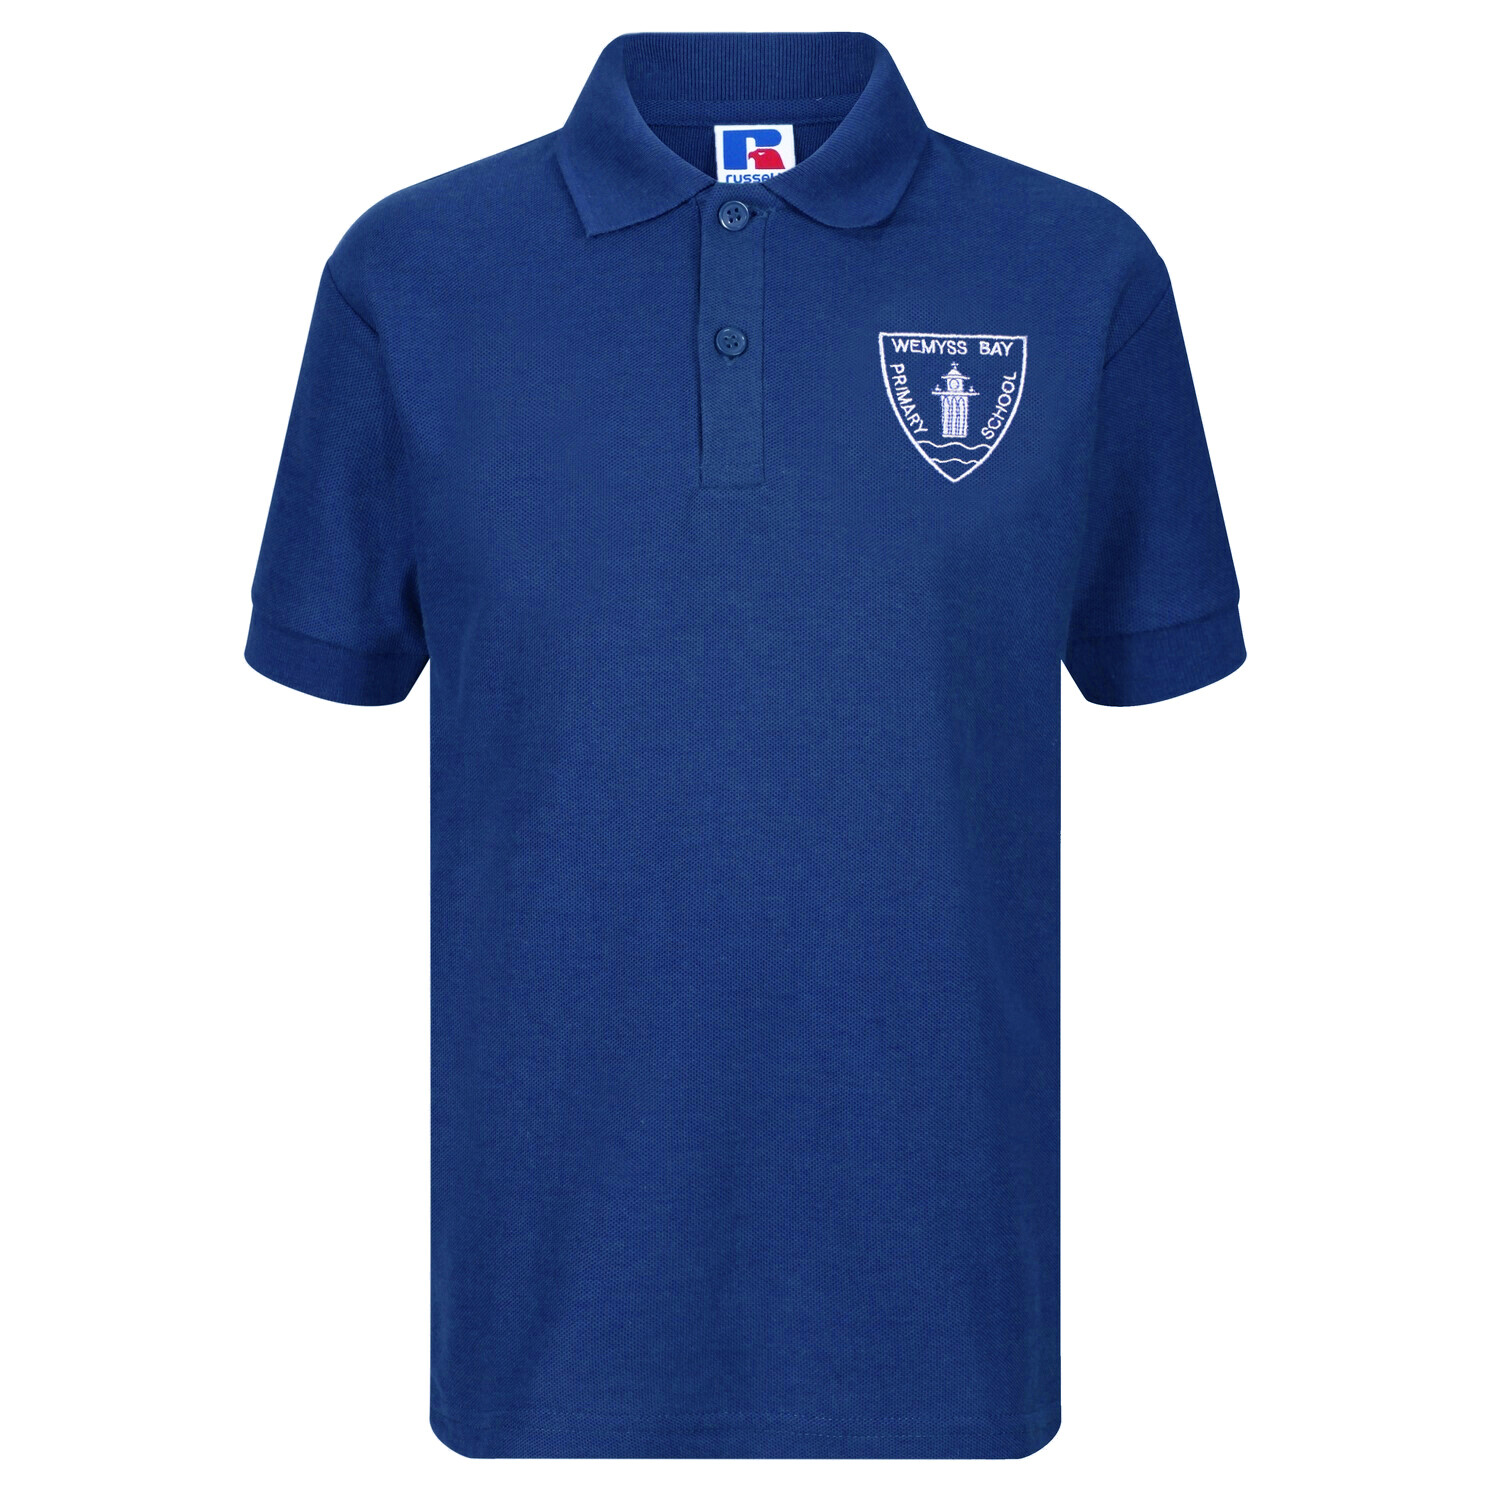 Wemyss Bay Primary Staff Polo (Unisex) (RCS539M)